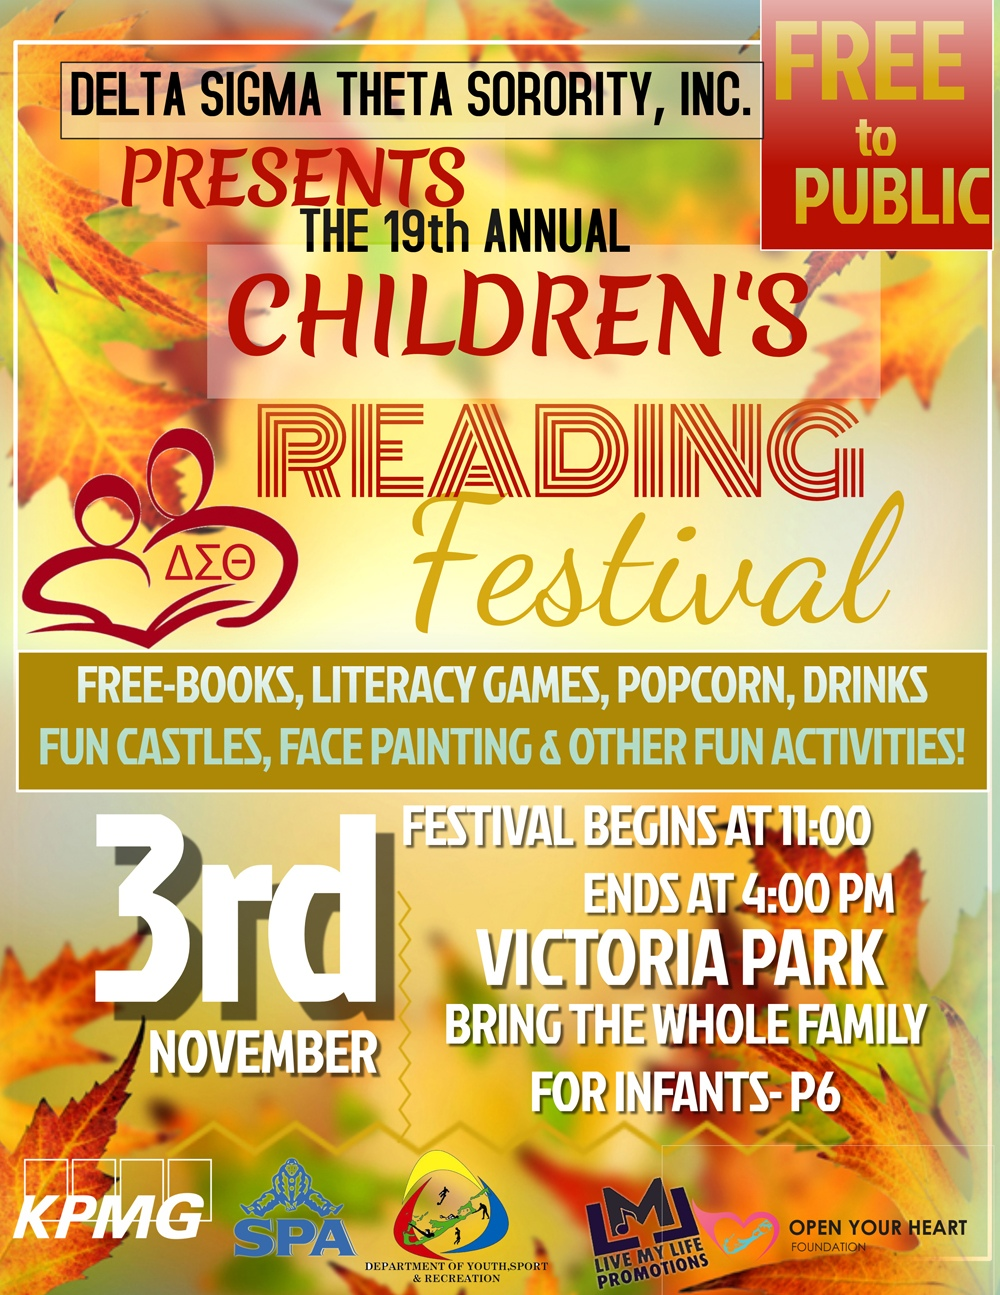 Children's Reading Festival Bermuda Nov 2 2018 (4)